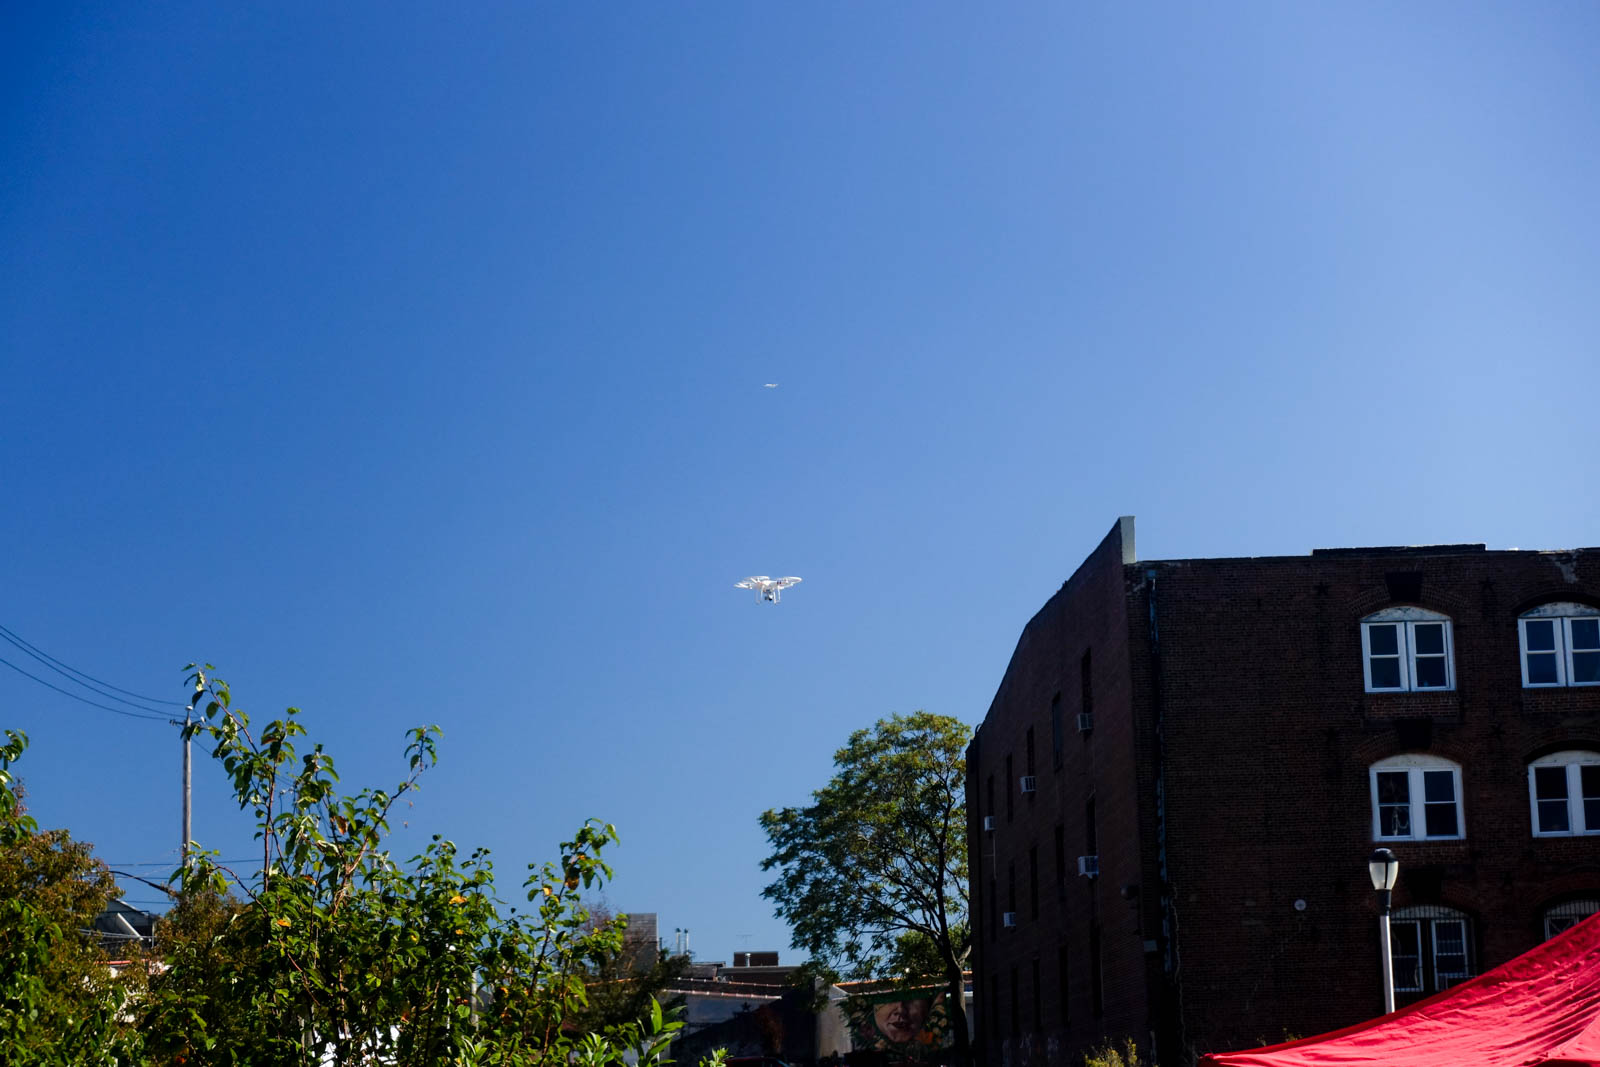 A DJI Phantom drone flew overhead recording video to be published later.